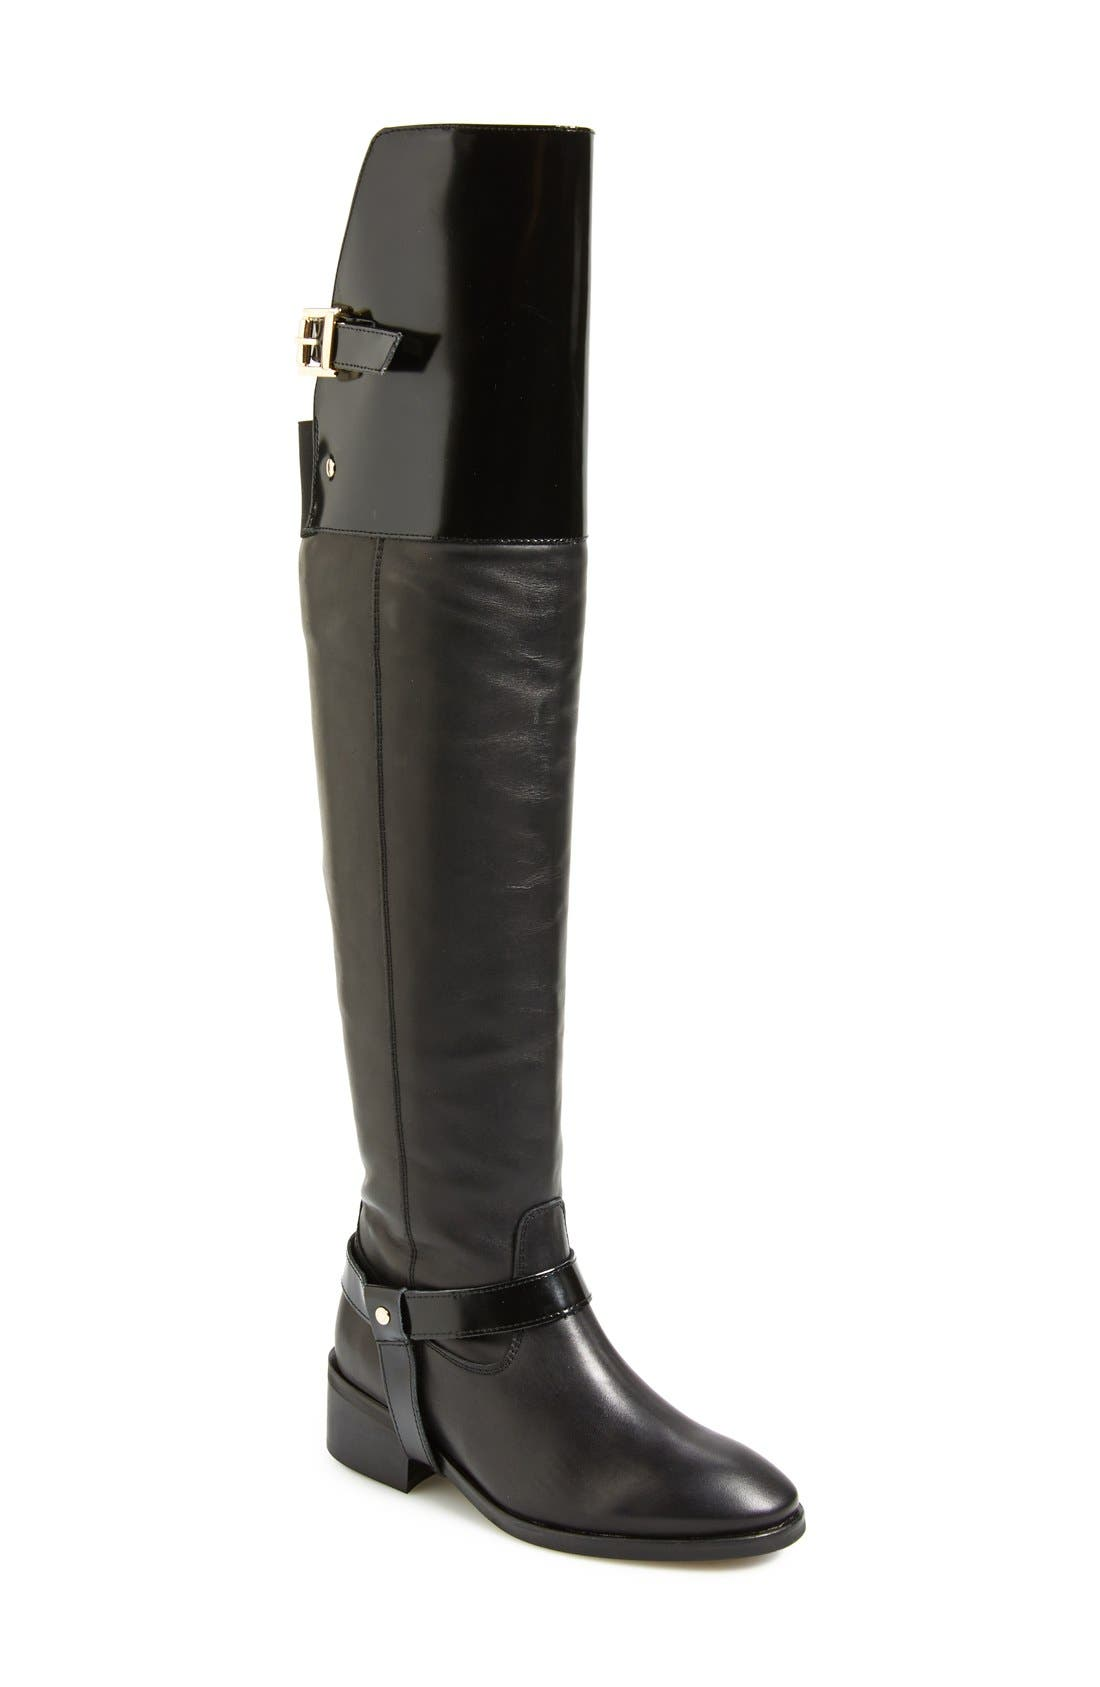 Alternate Image 1 Selected - Topshop 'Dreamer' Over the Knee Riding Boot (Women)